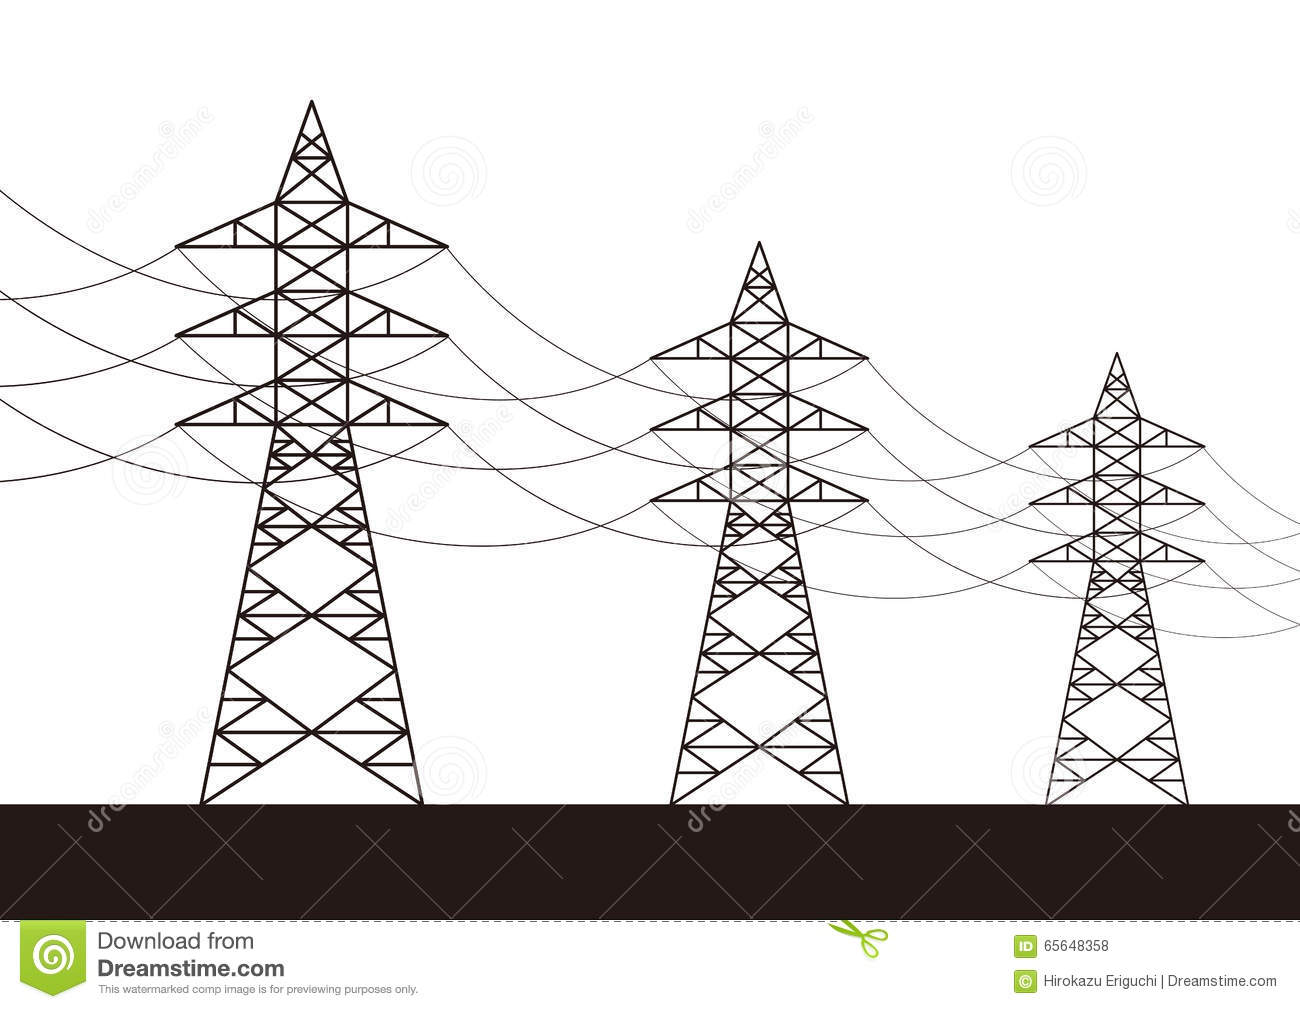 Jpg To Line Art Converter Free Download : Transmission towers clipart clipground